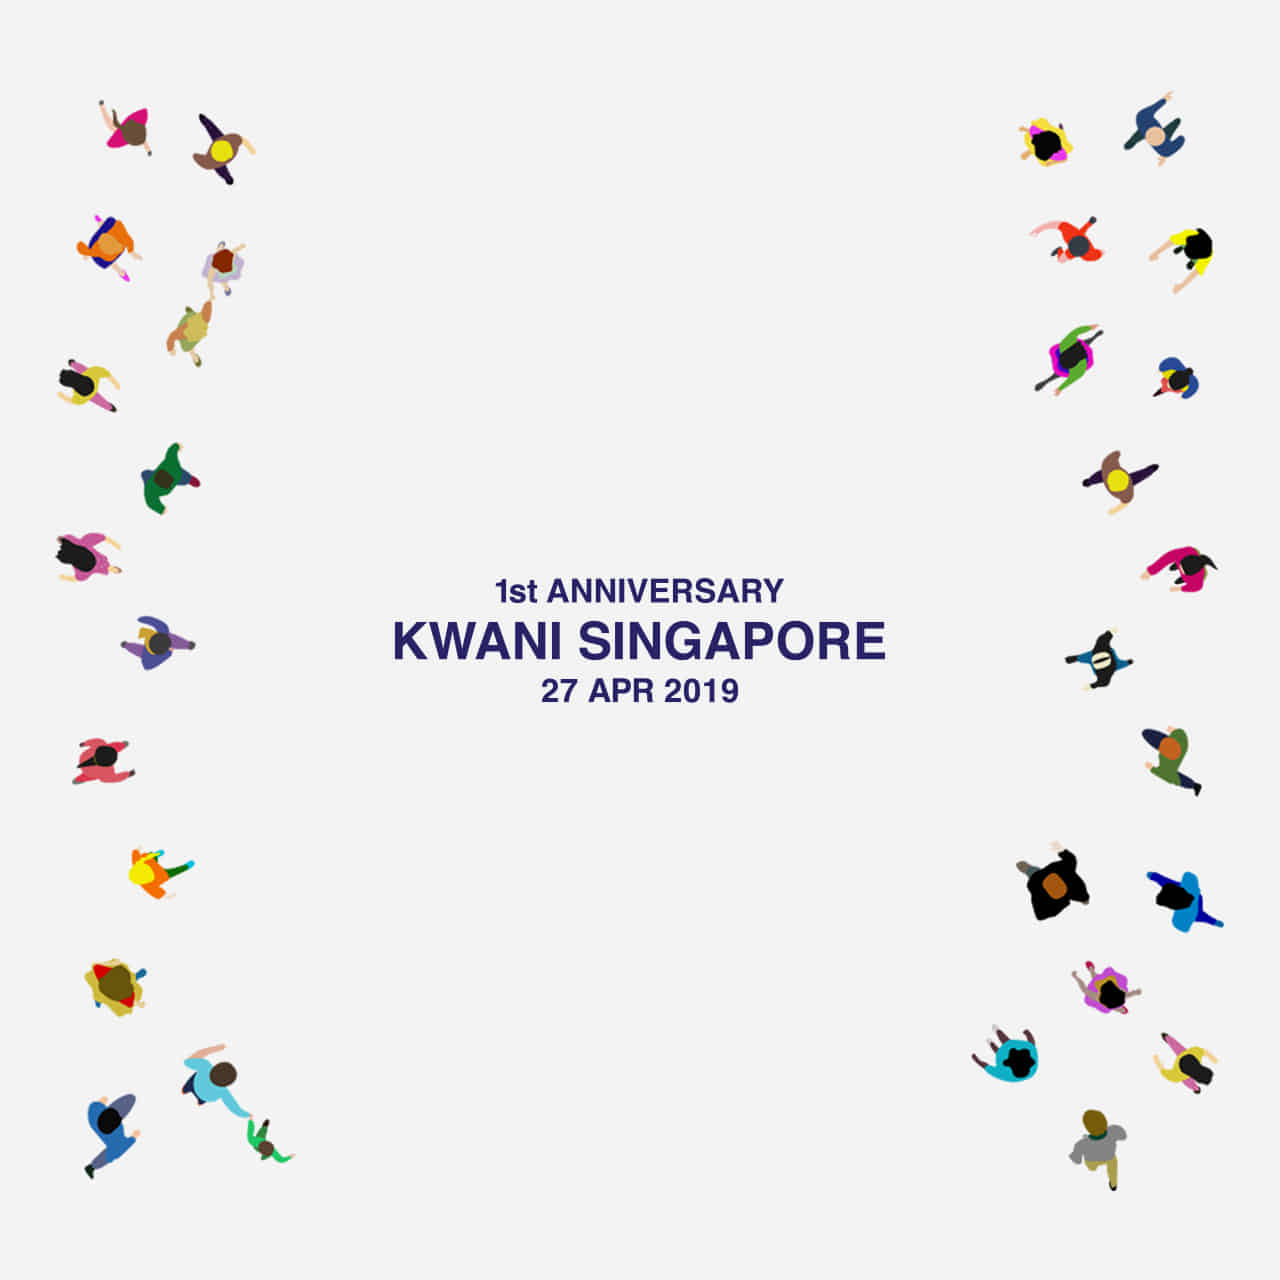 Happy Birthday KWANI Singapore!